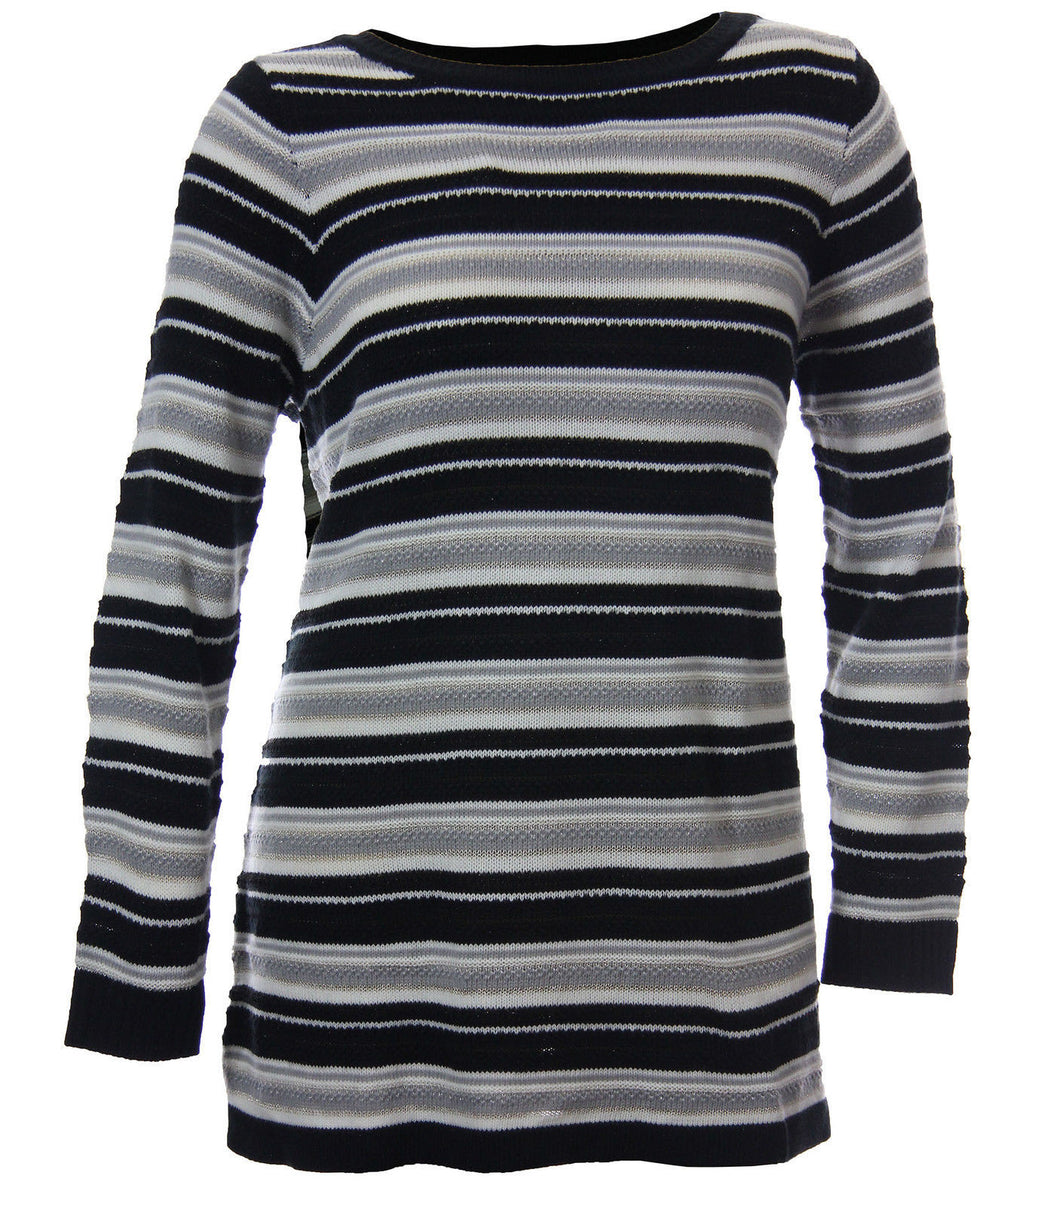 Charter Club Multi Color Striped Long Sleeve Pull Over Sweater